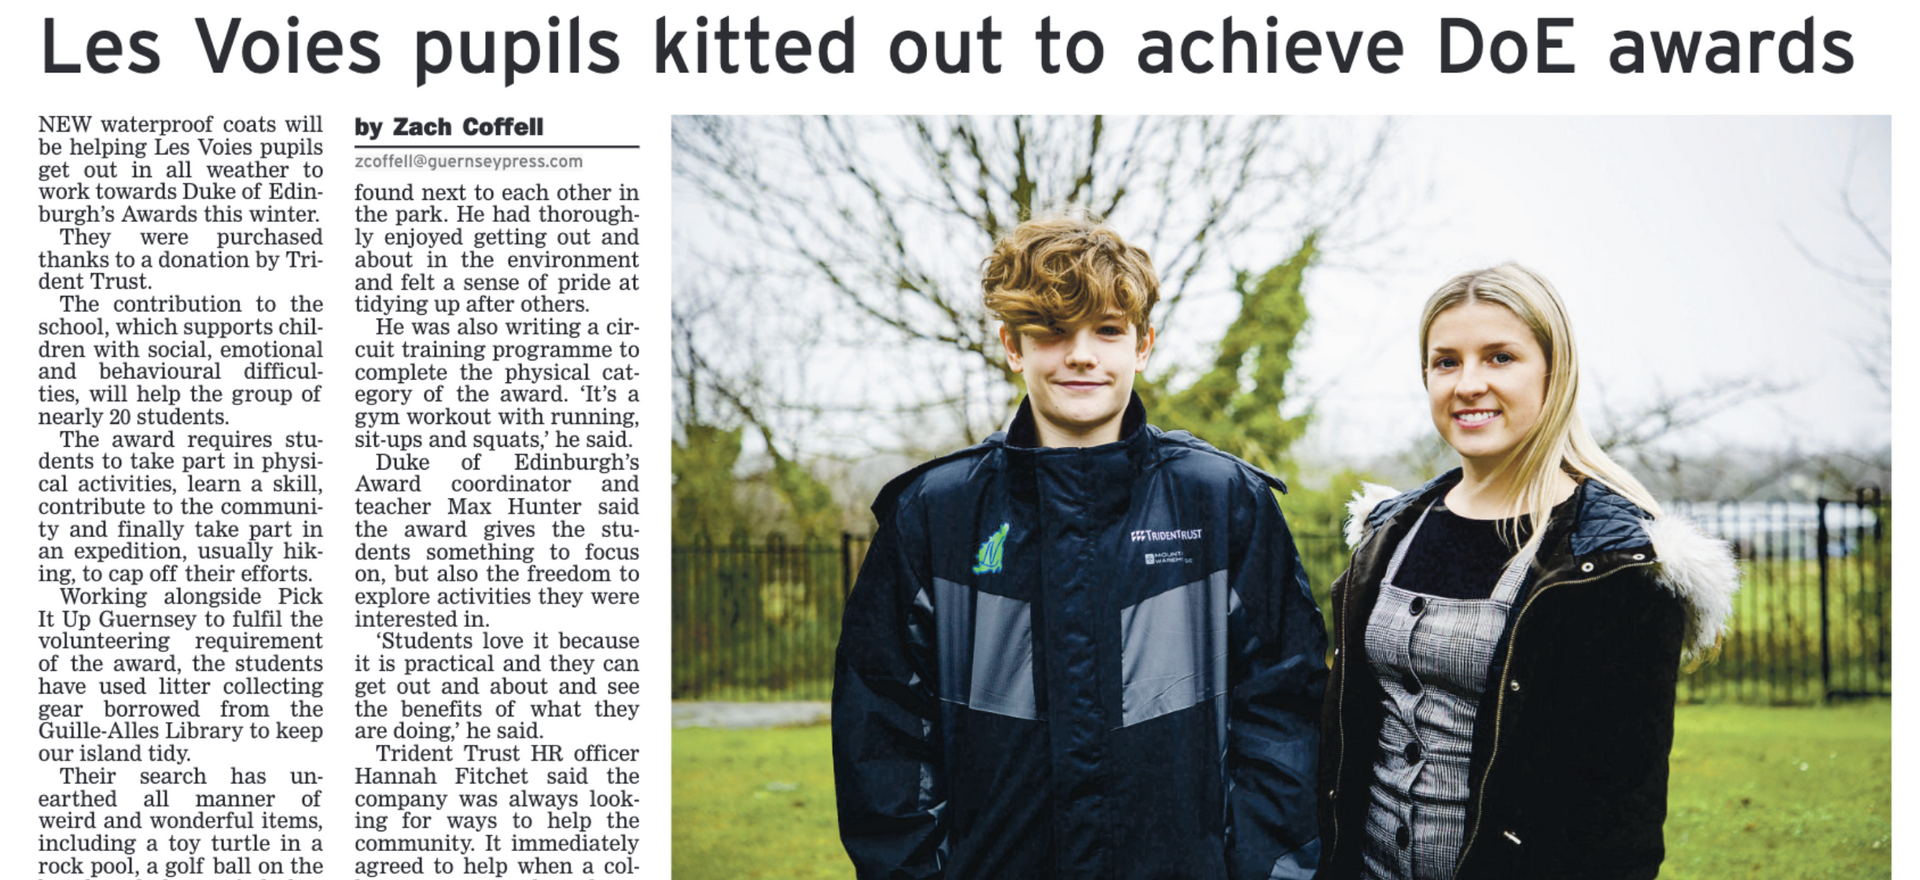 Les Voies pupils kitted out to achieve DoE Awards